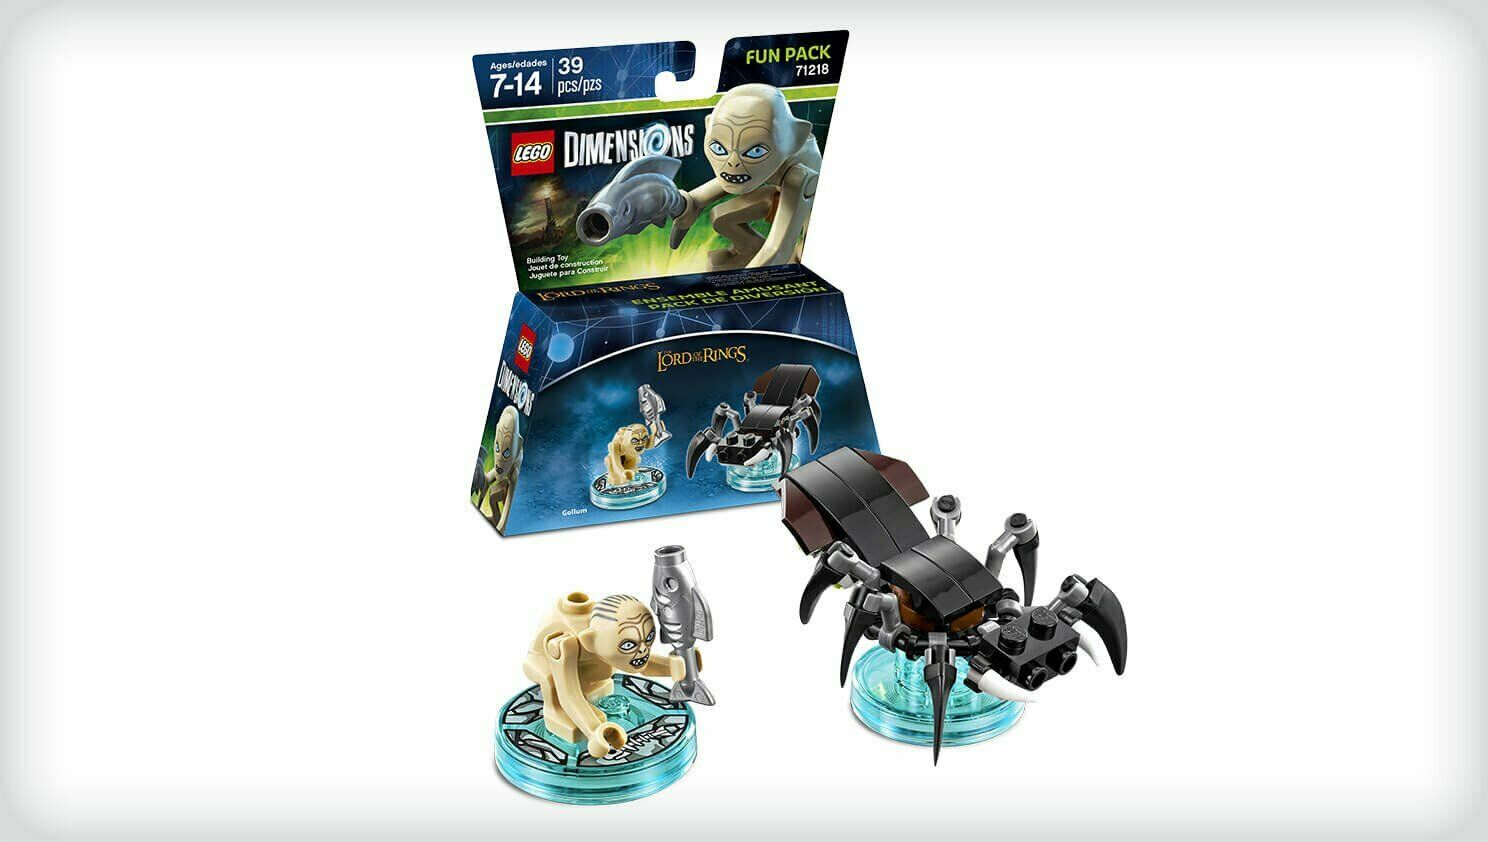 LEGO Dimensions 71218 Lord Of The Rings Gollum Fun Pack NEW & SEALED